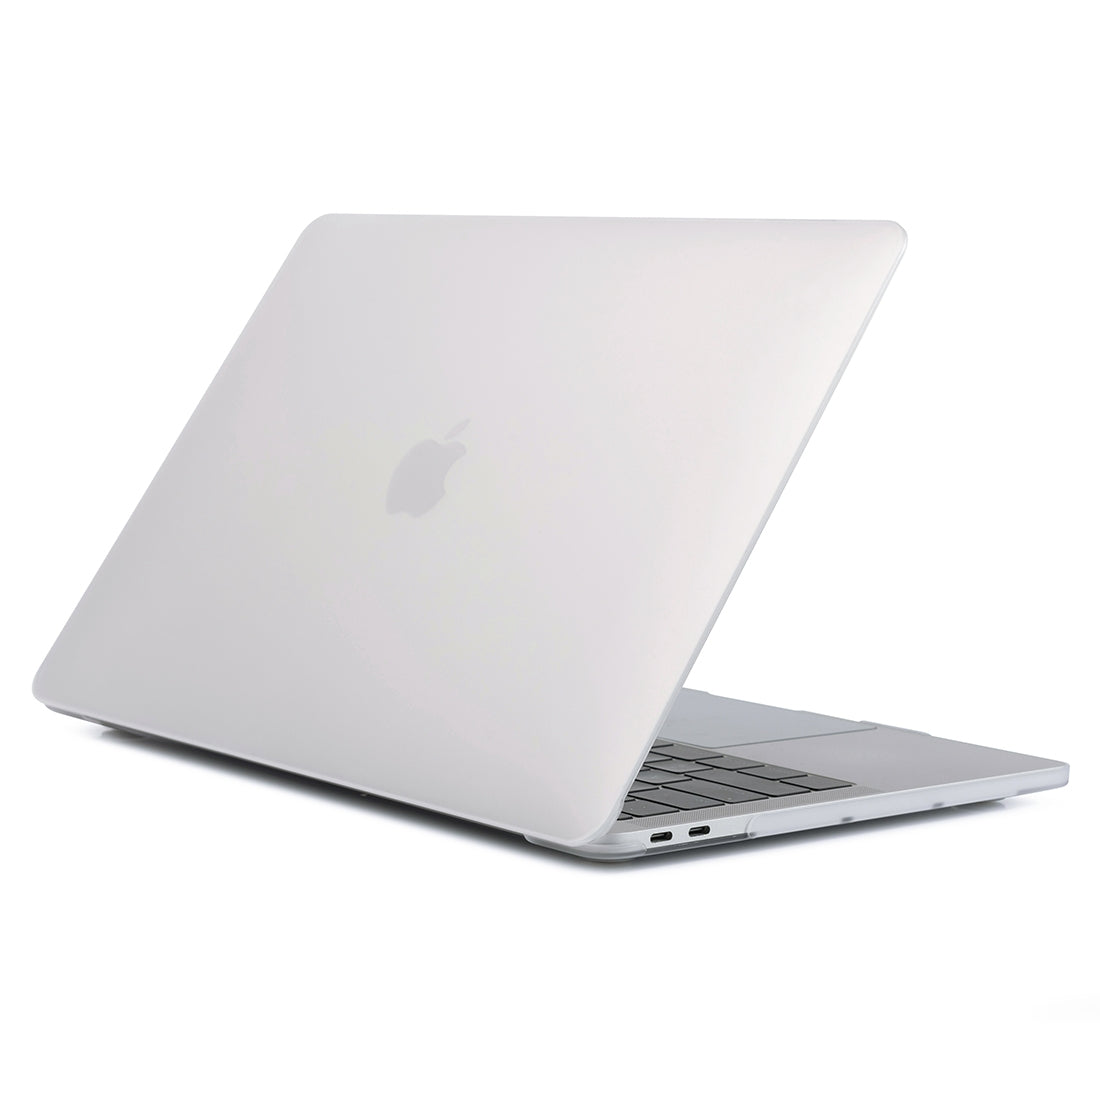 For Macbook Pro 16 inch Laptop Matte Style Protective Case(Transparent)